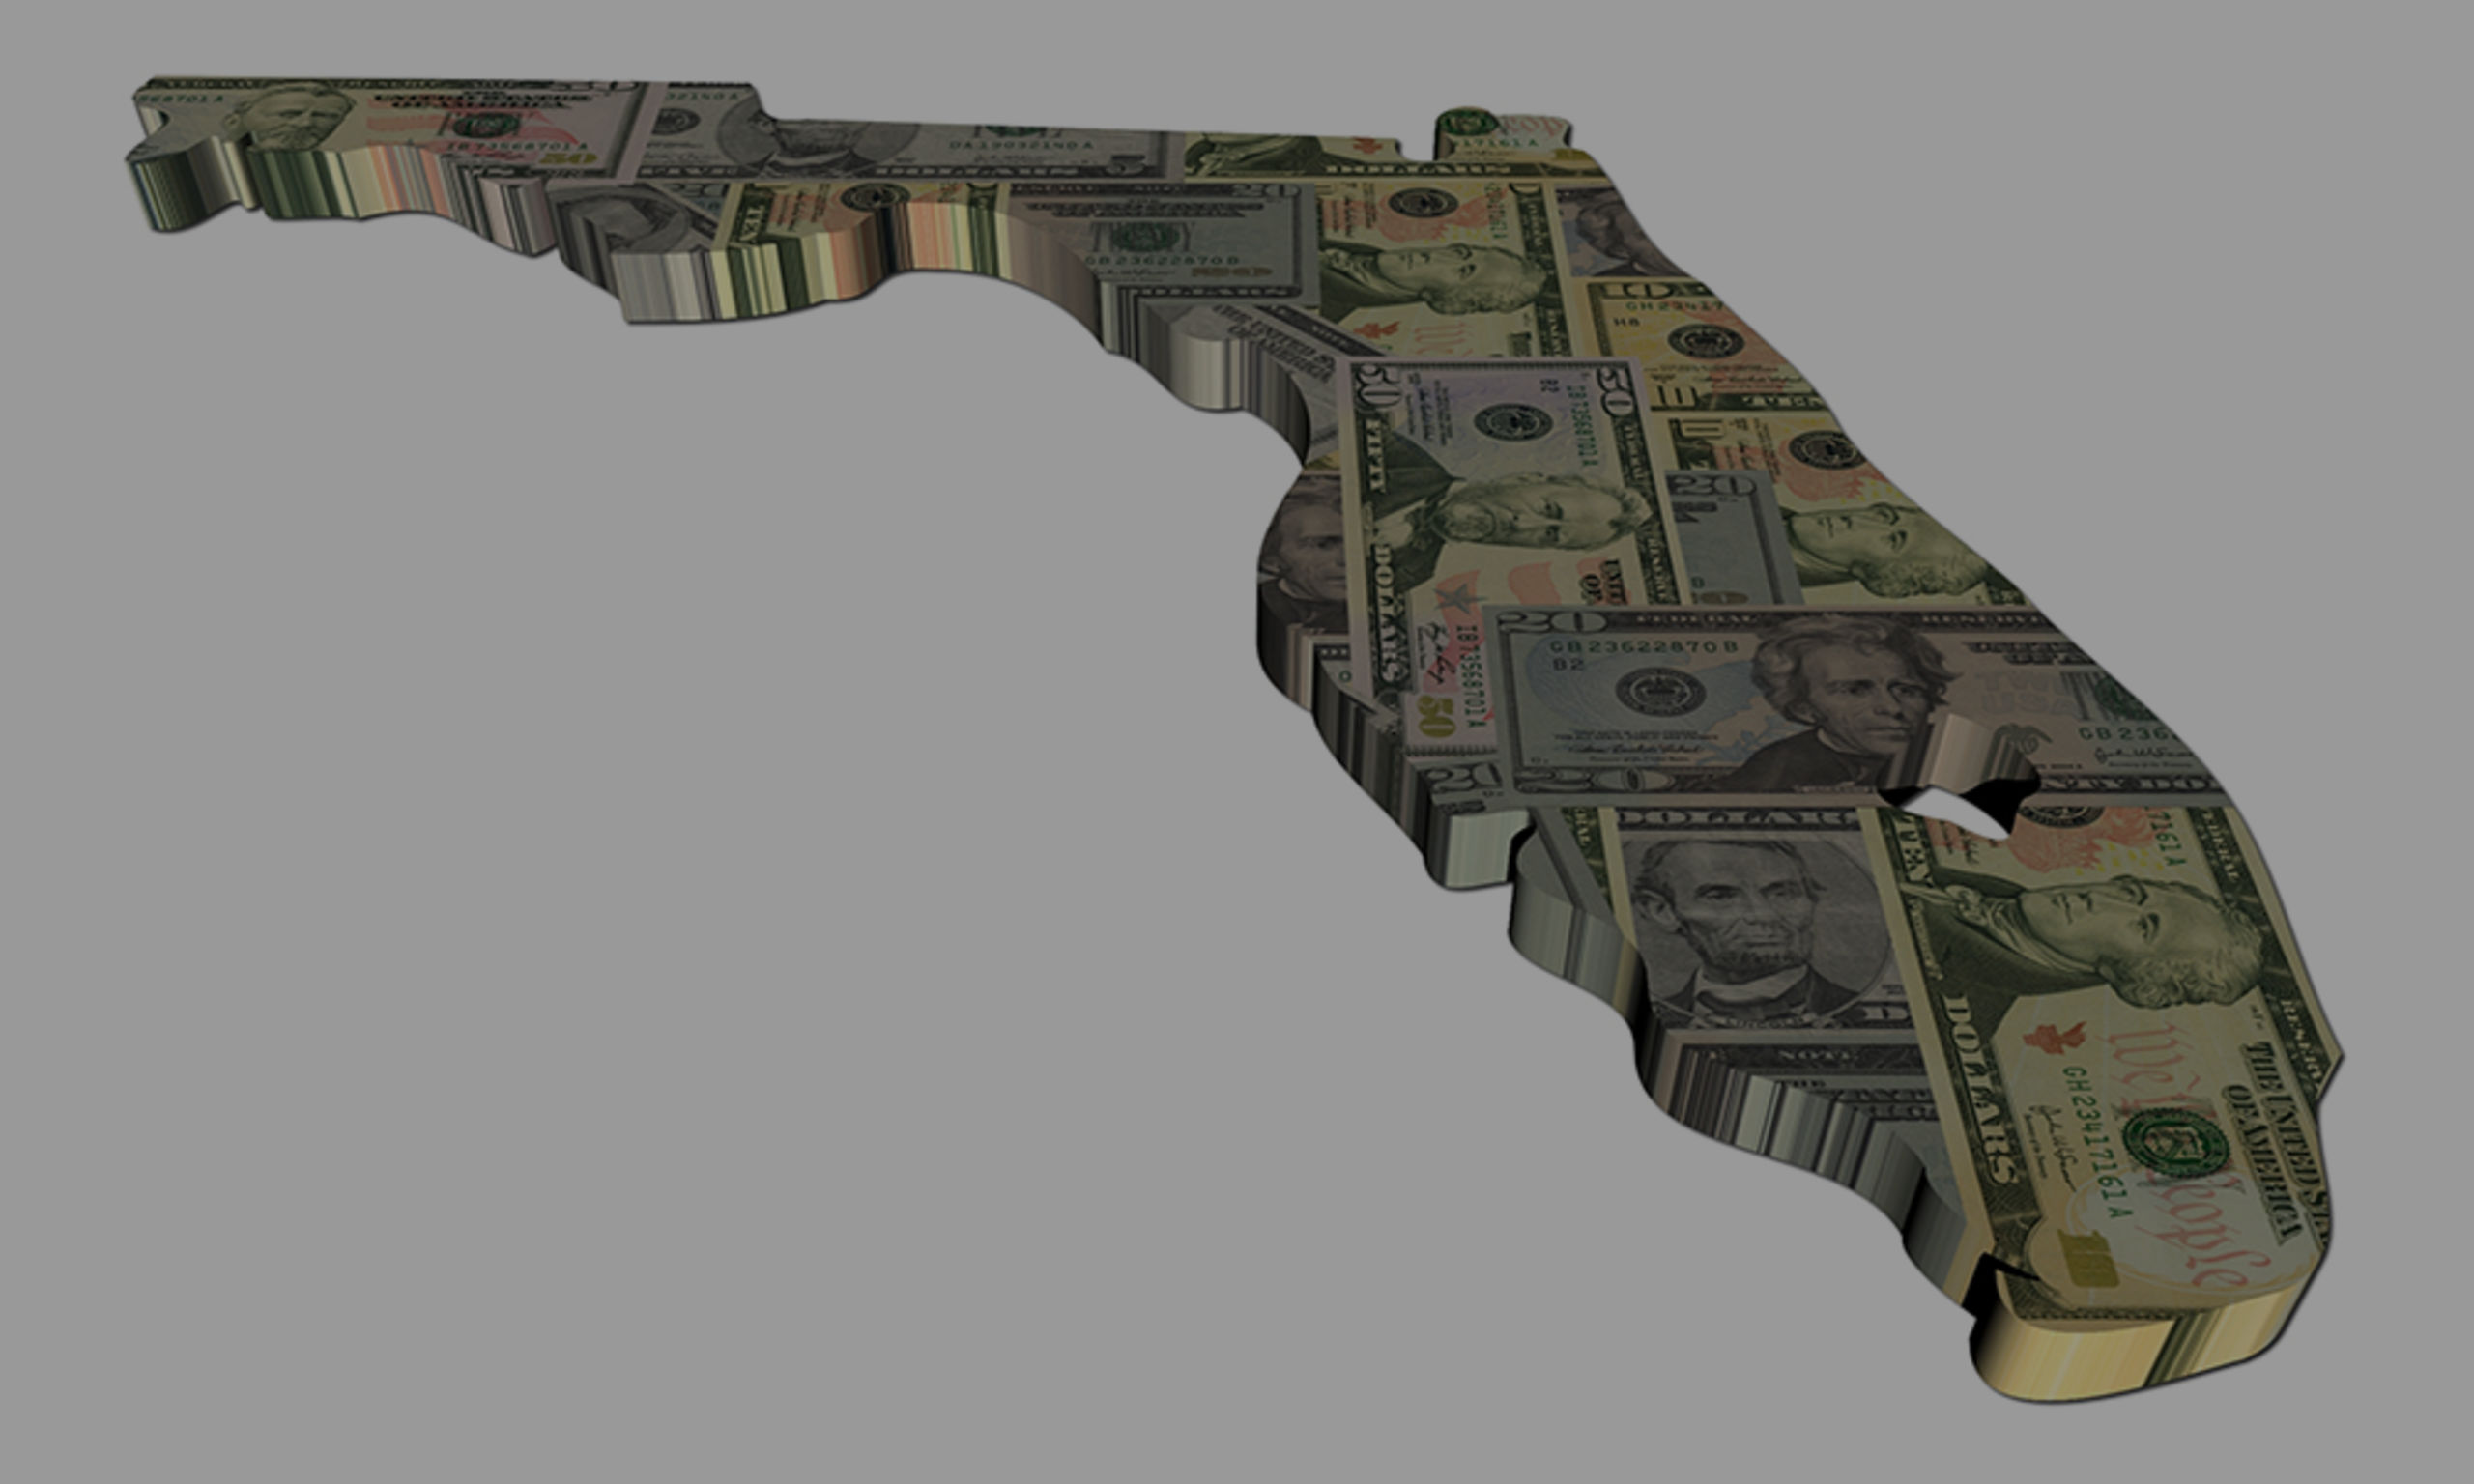 Expect growth in Fla. employment, population and visitors